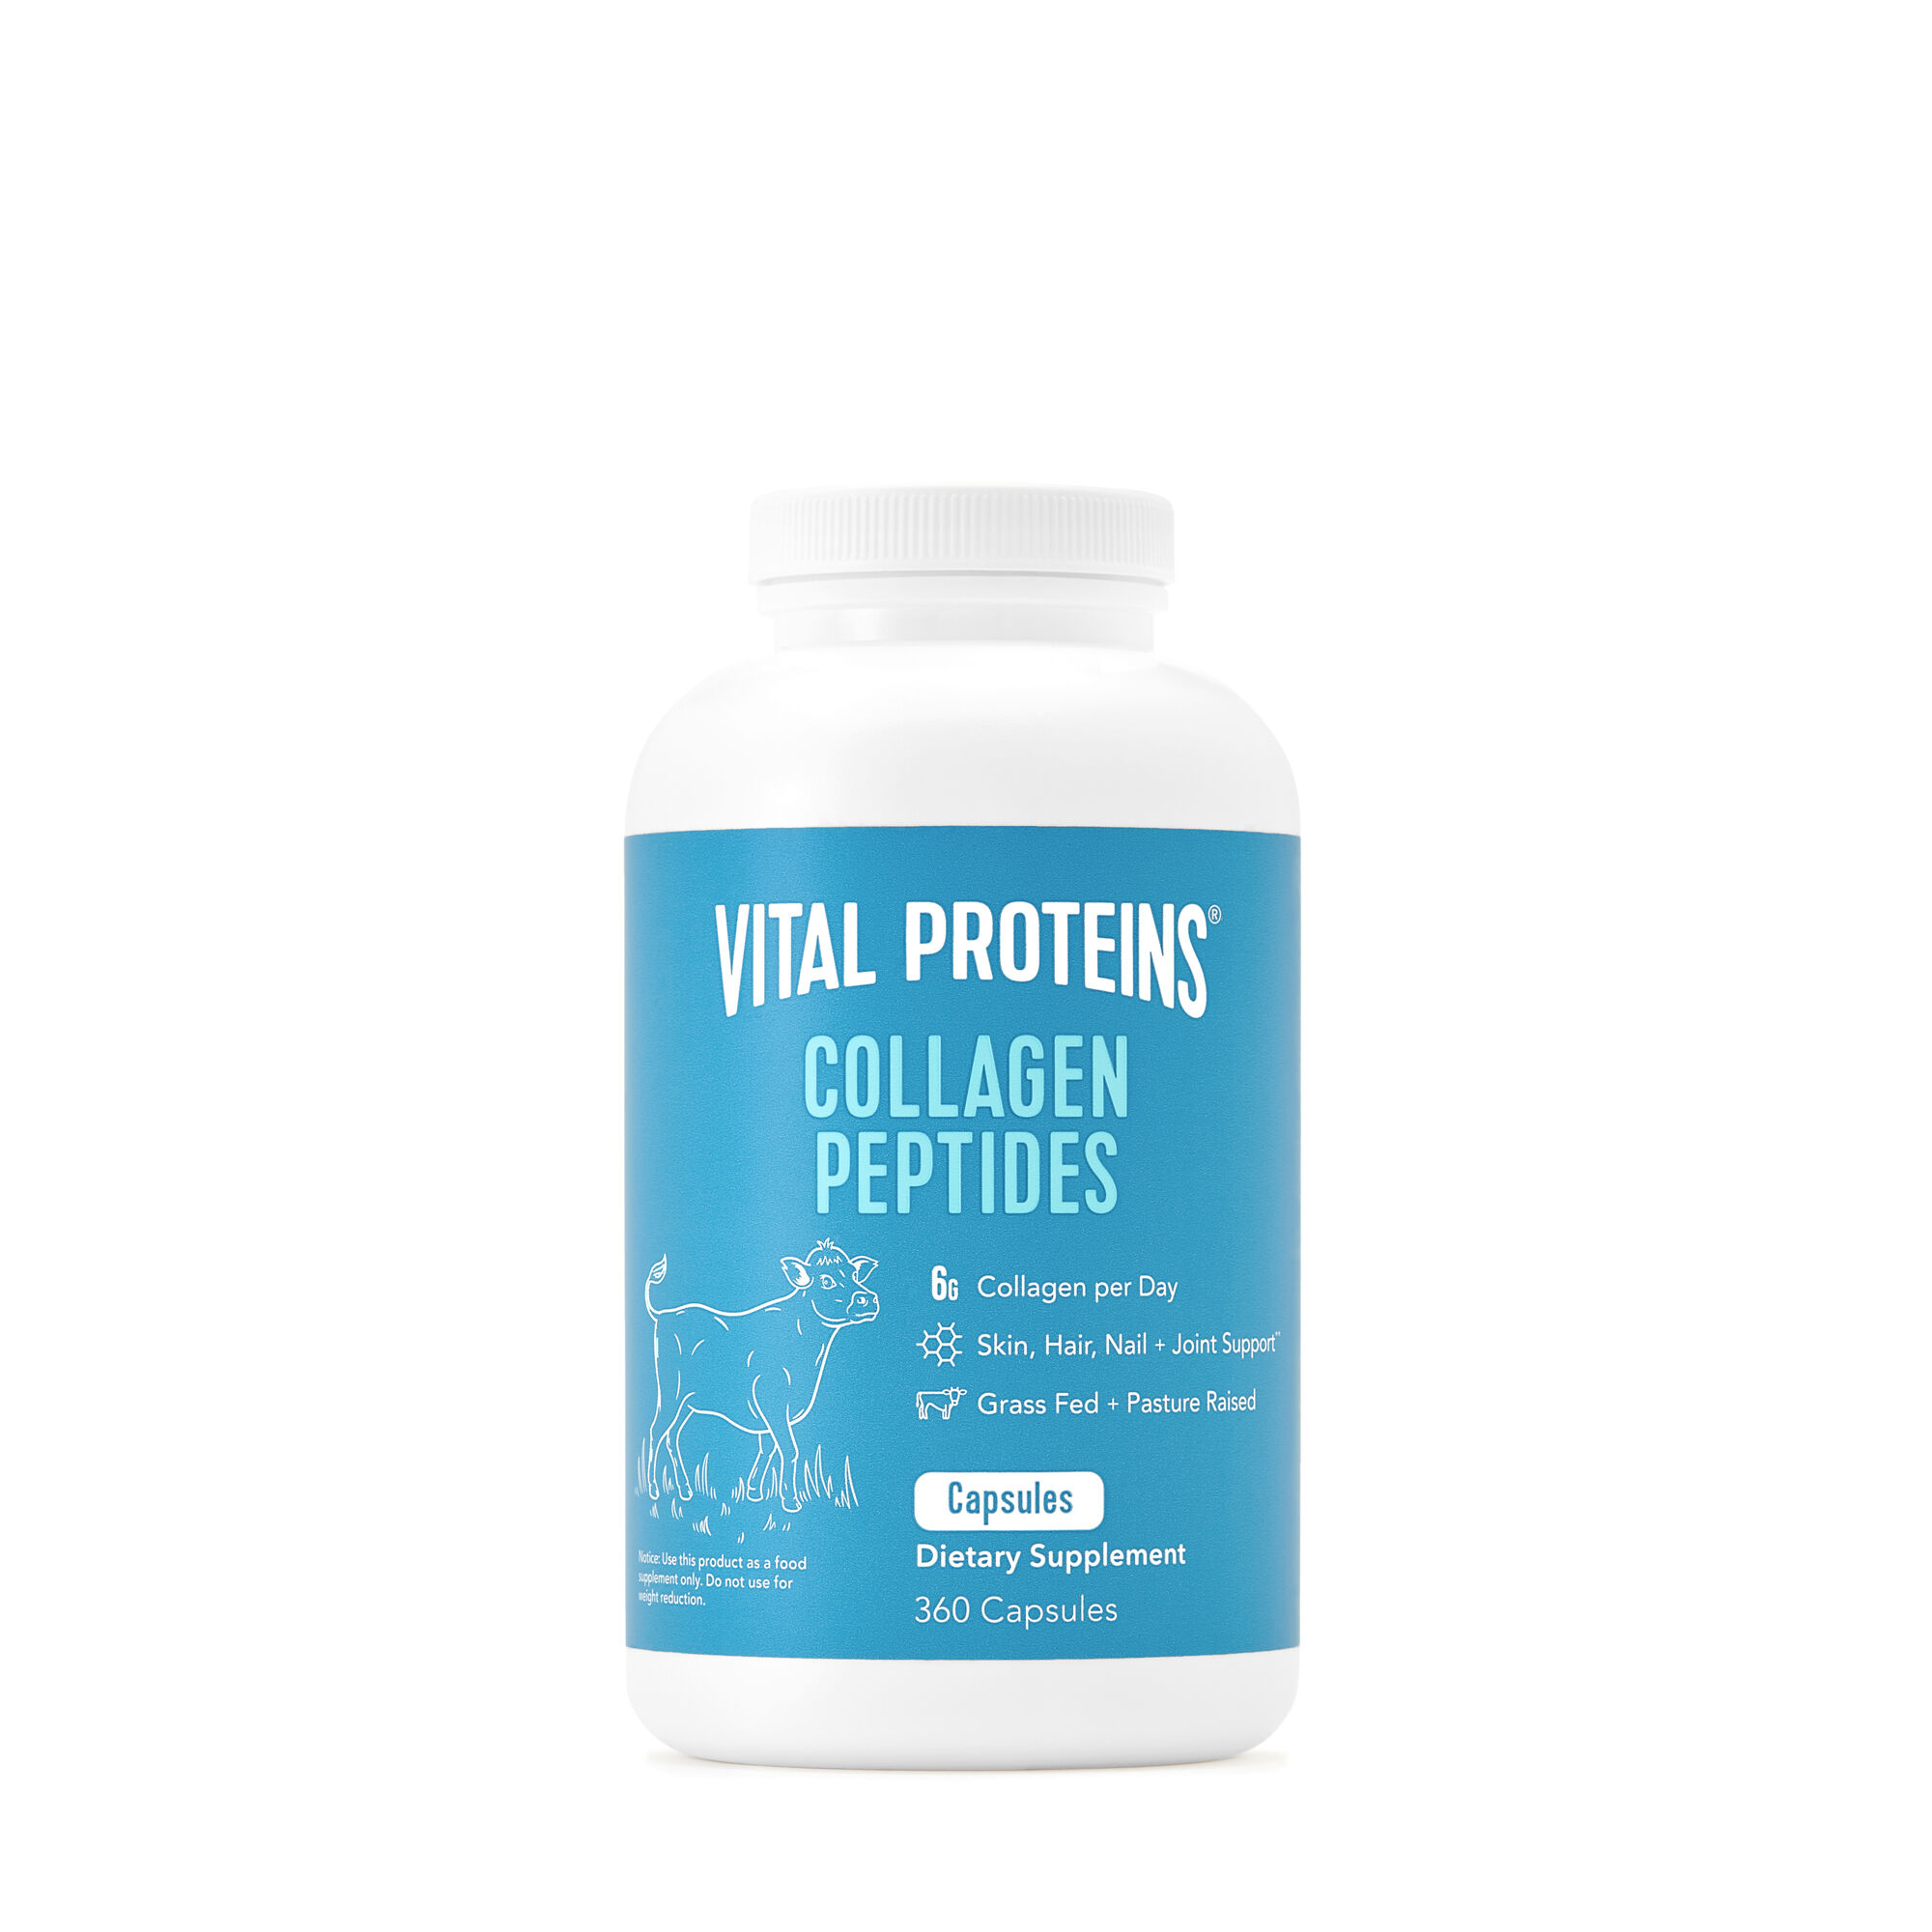 Vital Proteins Collagen Peptides Capsules Gnc,Creative Ways To Hang Curtains From Ceiling